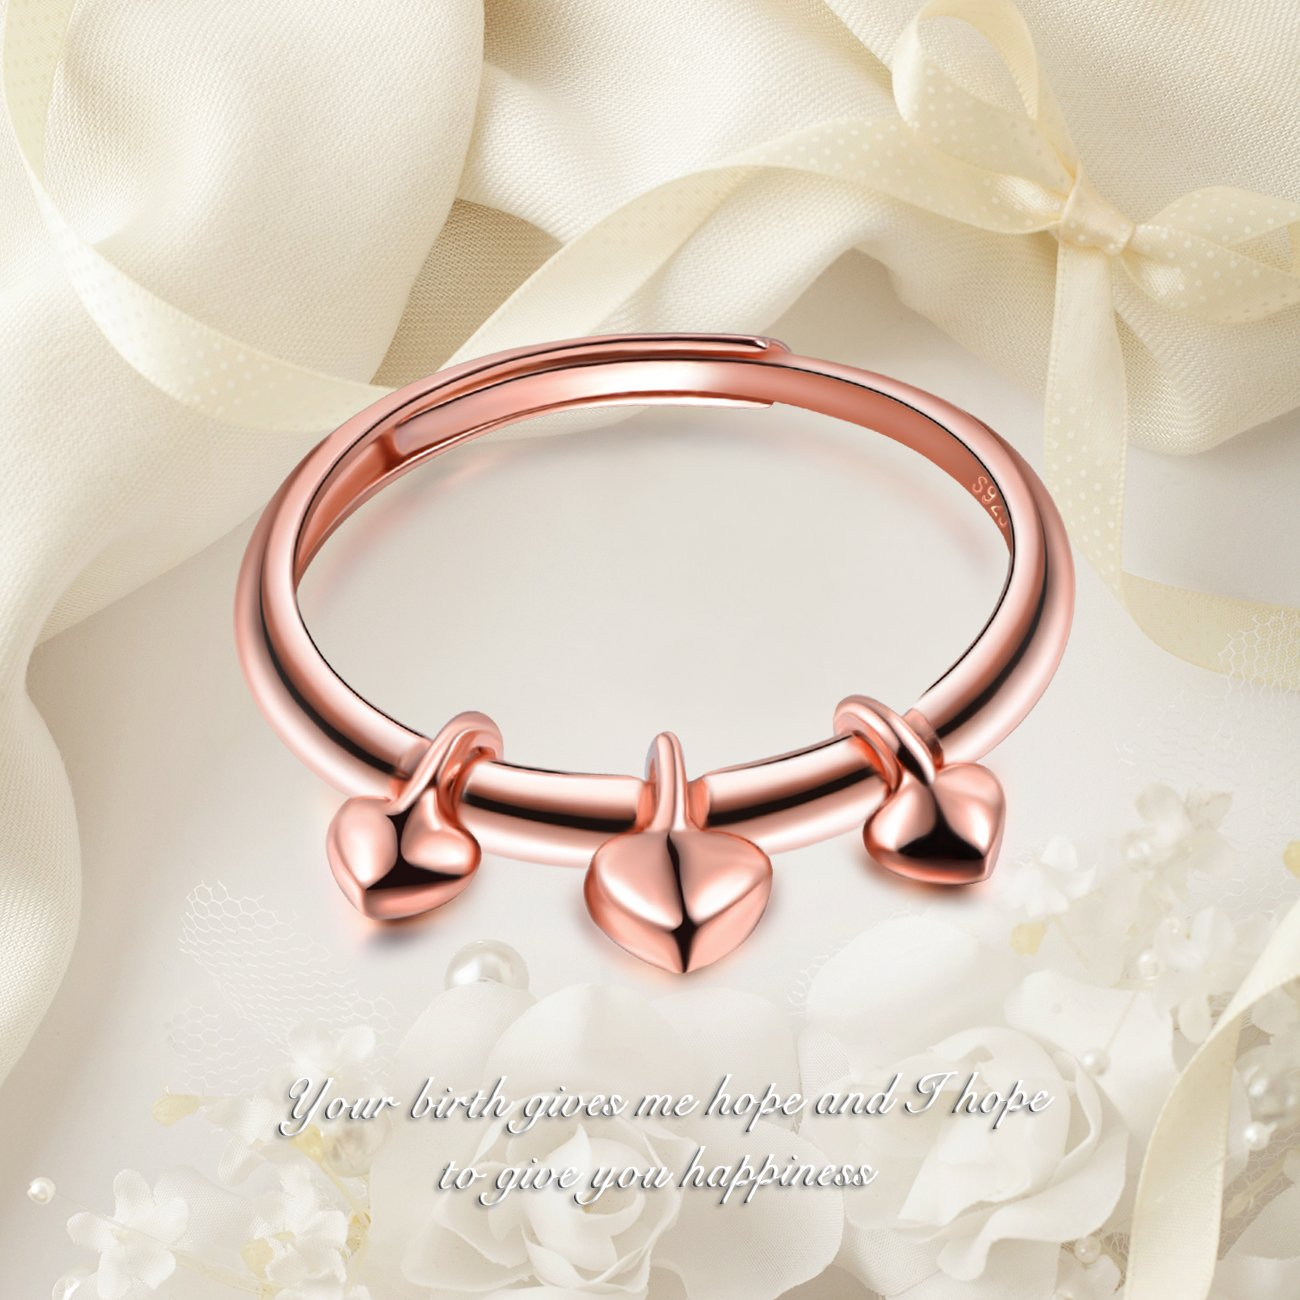 Rose Gold Plated Yumilok Jewelry 925 Sterling Silver Classic Hearts Polished Adjustable Ring for Women//Girls